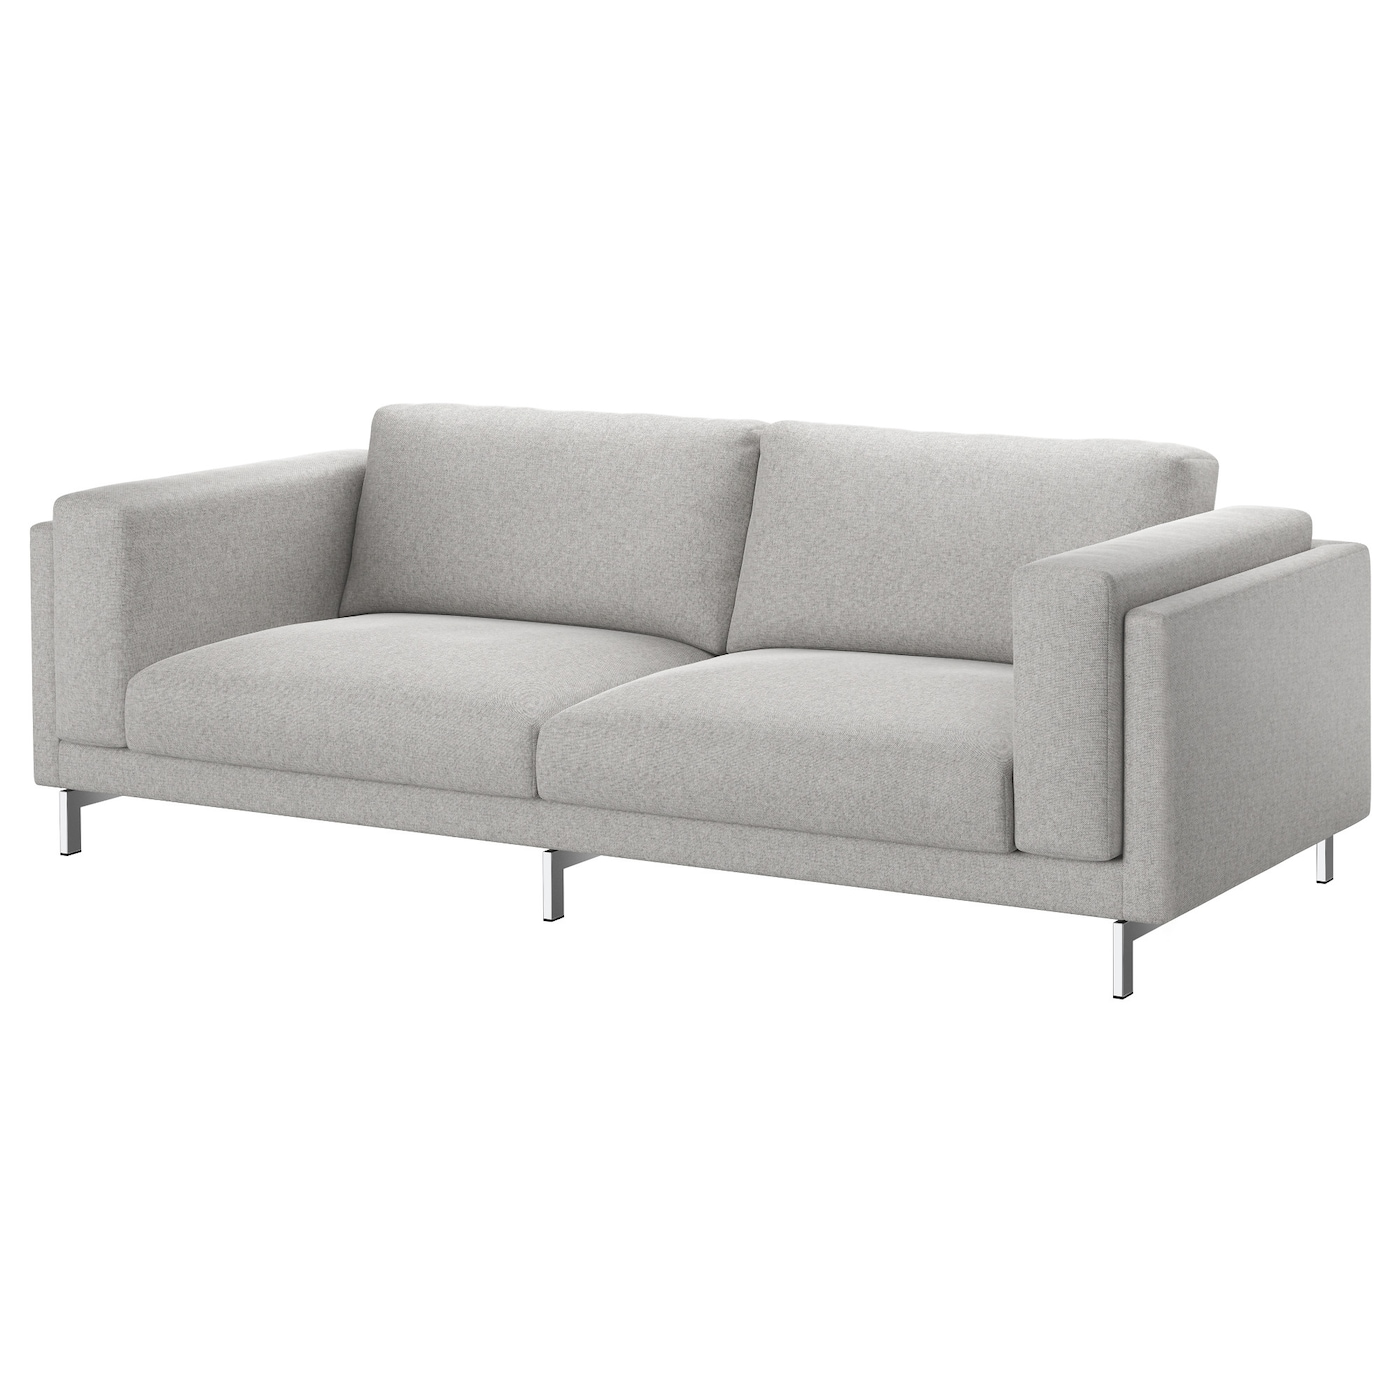 Bankhoes Ikea Bank.Nockeby Cover Three Seat Sofa Tallmyra White Black Ikea